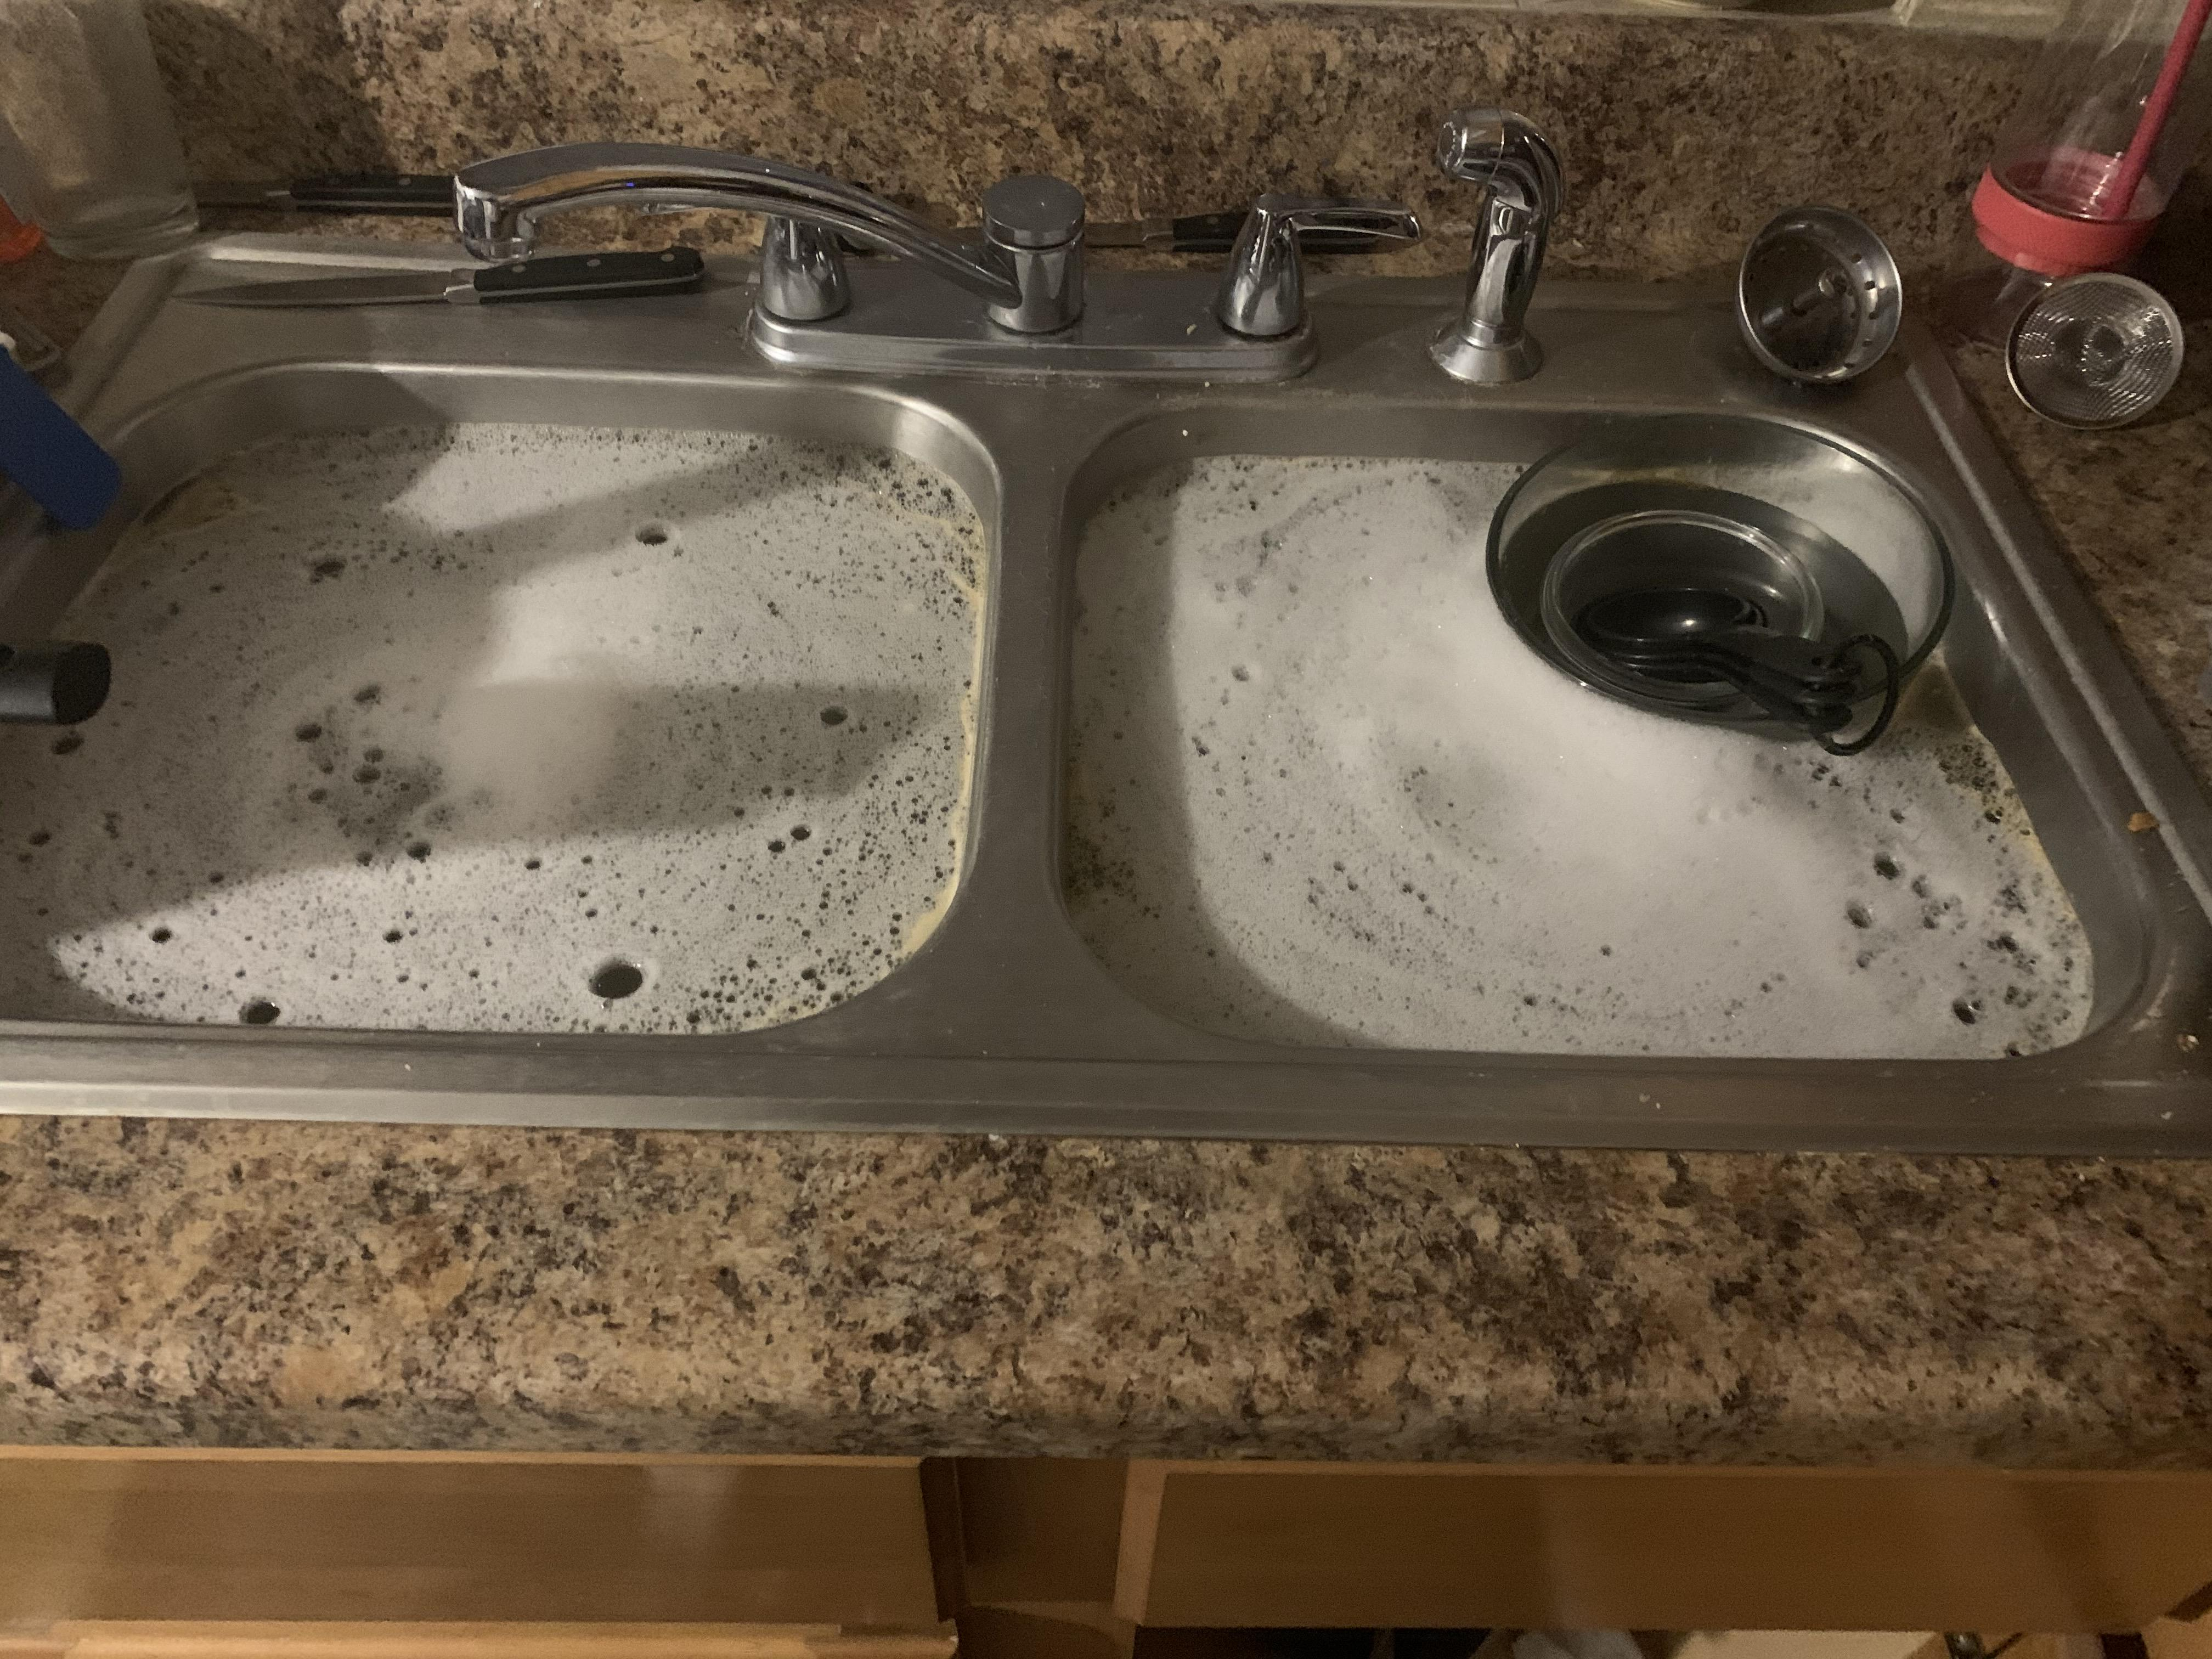 upstairs neighbor was doing his dishes